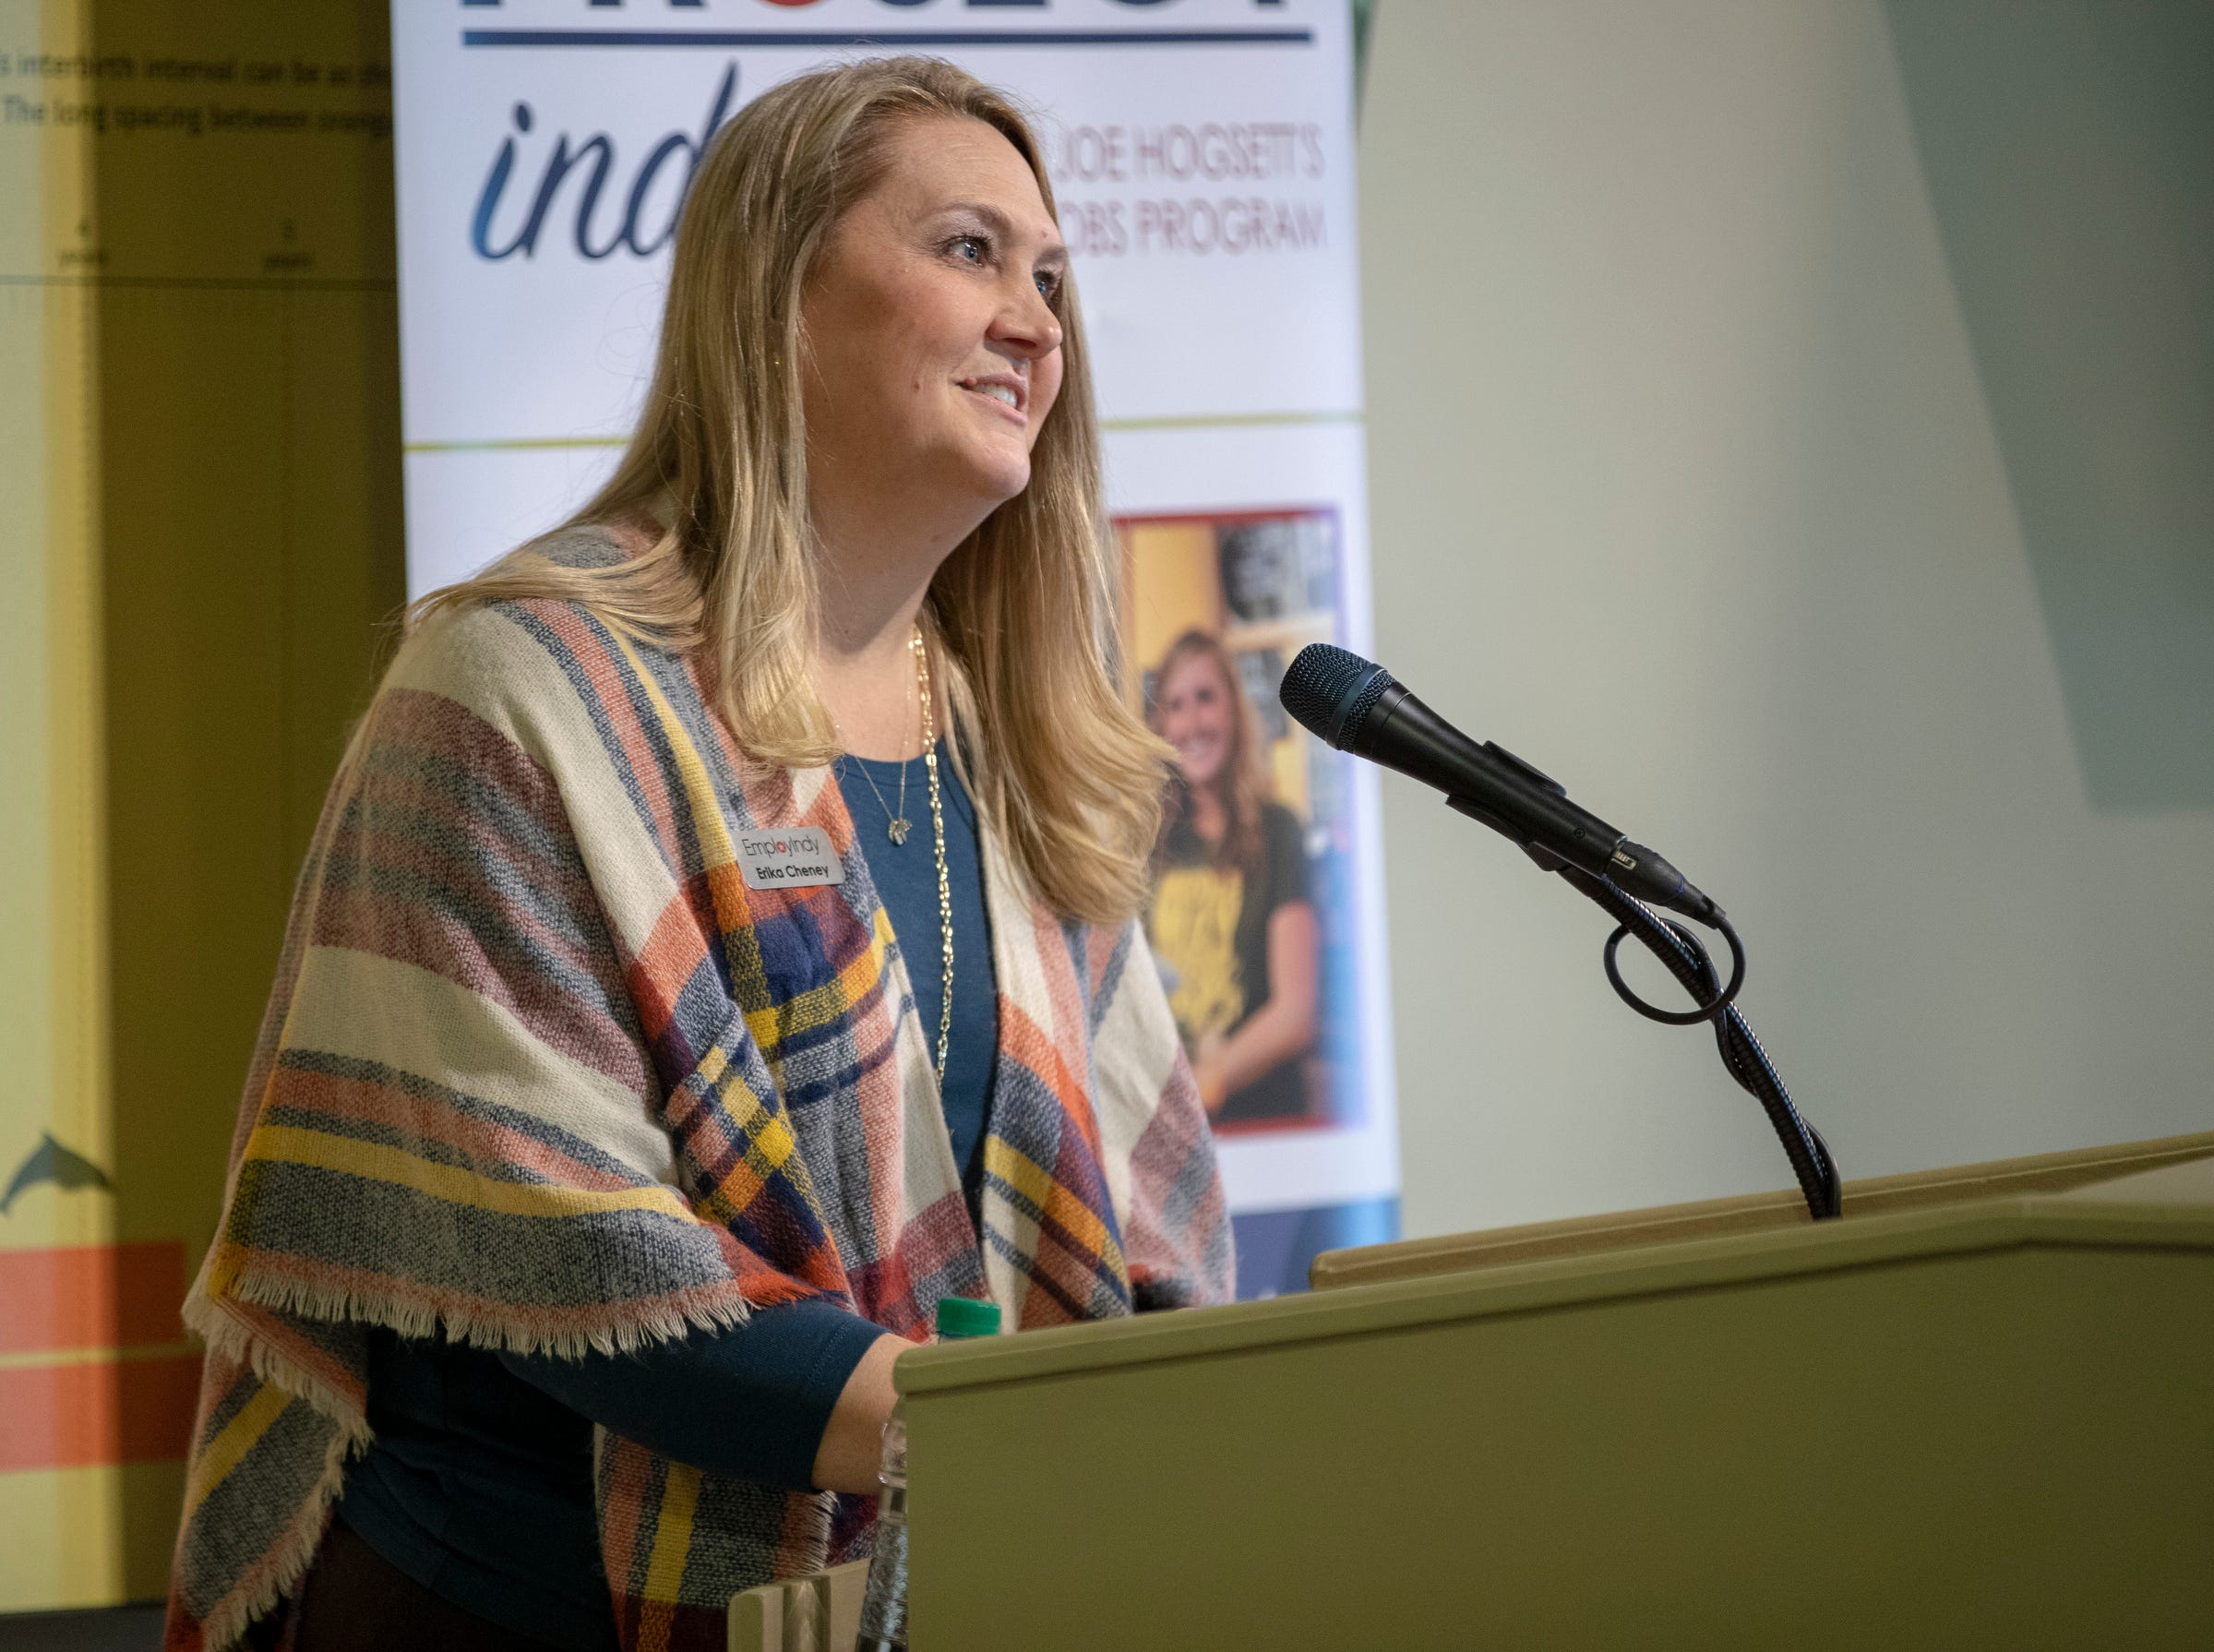 Erika Cheney, Director of In-School Youth, EmployIndy, speaks during an announcement about Mayor Joe Hogsett's EmployIndy program, at the Indianapolis Zoo, Wednesday, Jan. 30, 2019. The program, in its fourth year, has employed about 6,000 young adults, and is seeking employer partnerships for this coming Summer.